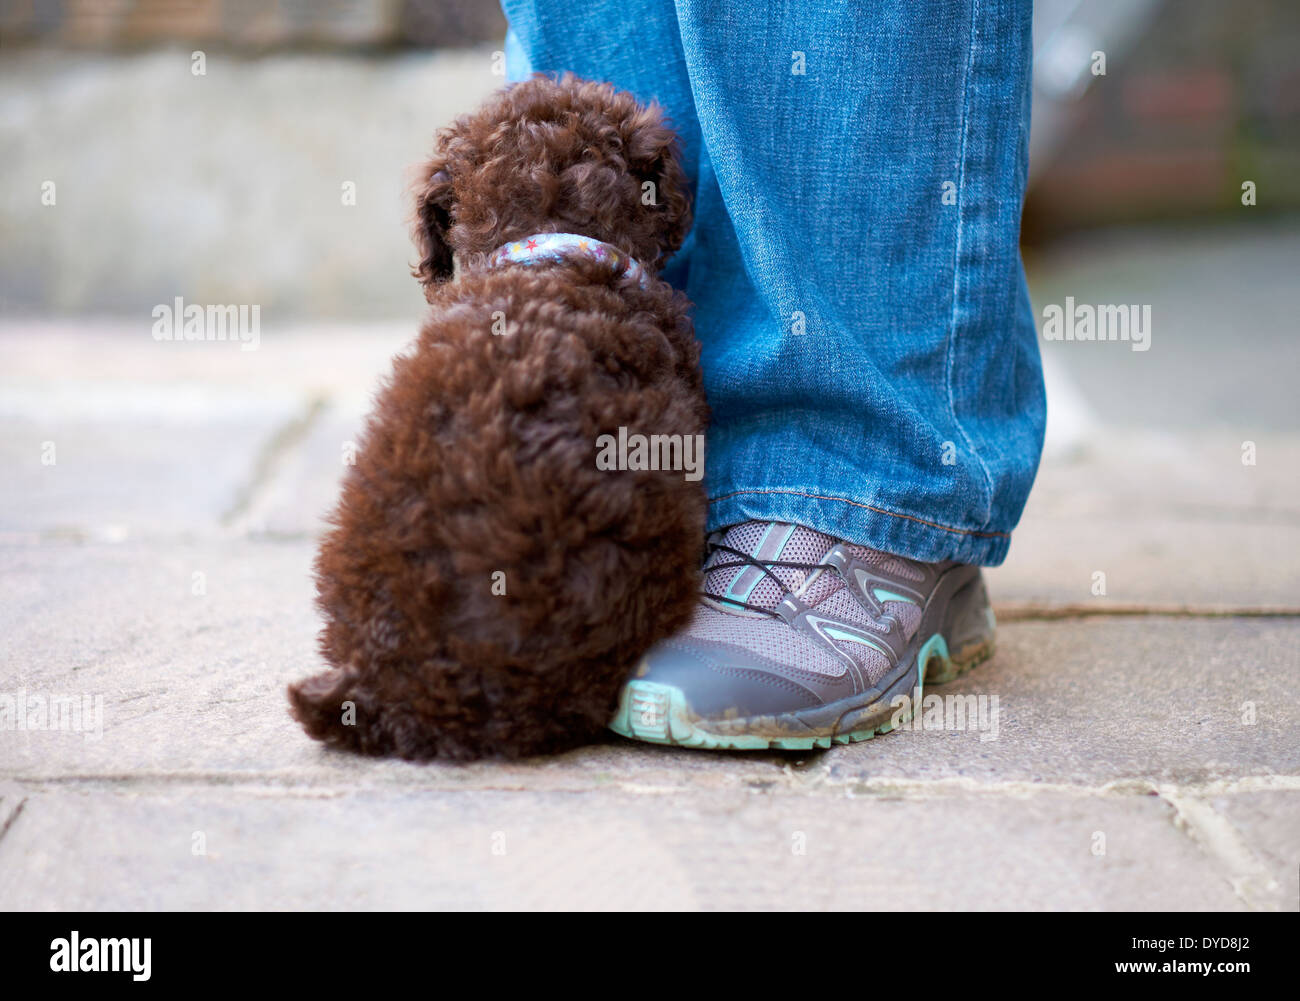 A shy miniature poodle sitting by it's owners leg outside. - Stock Image